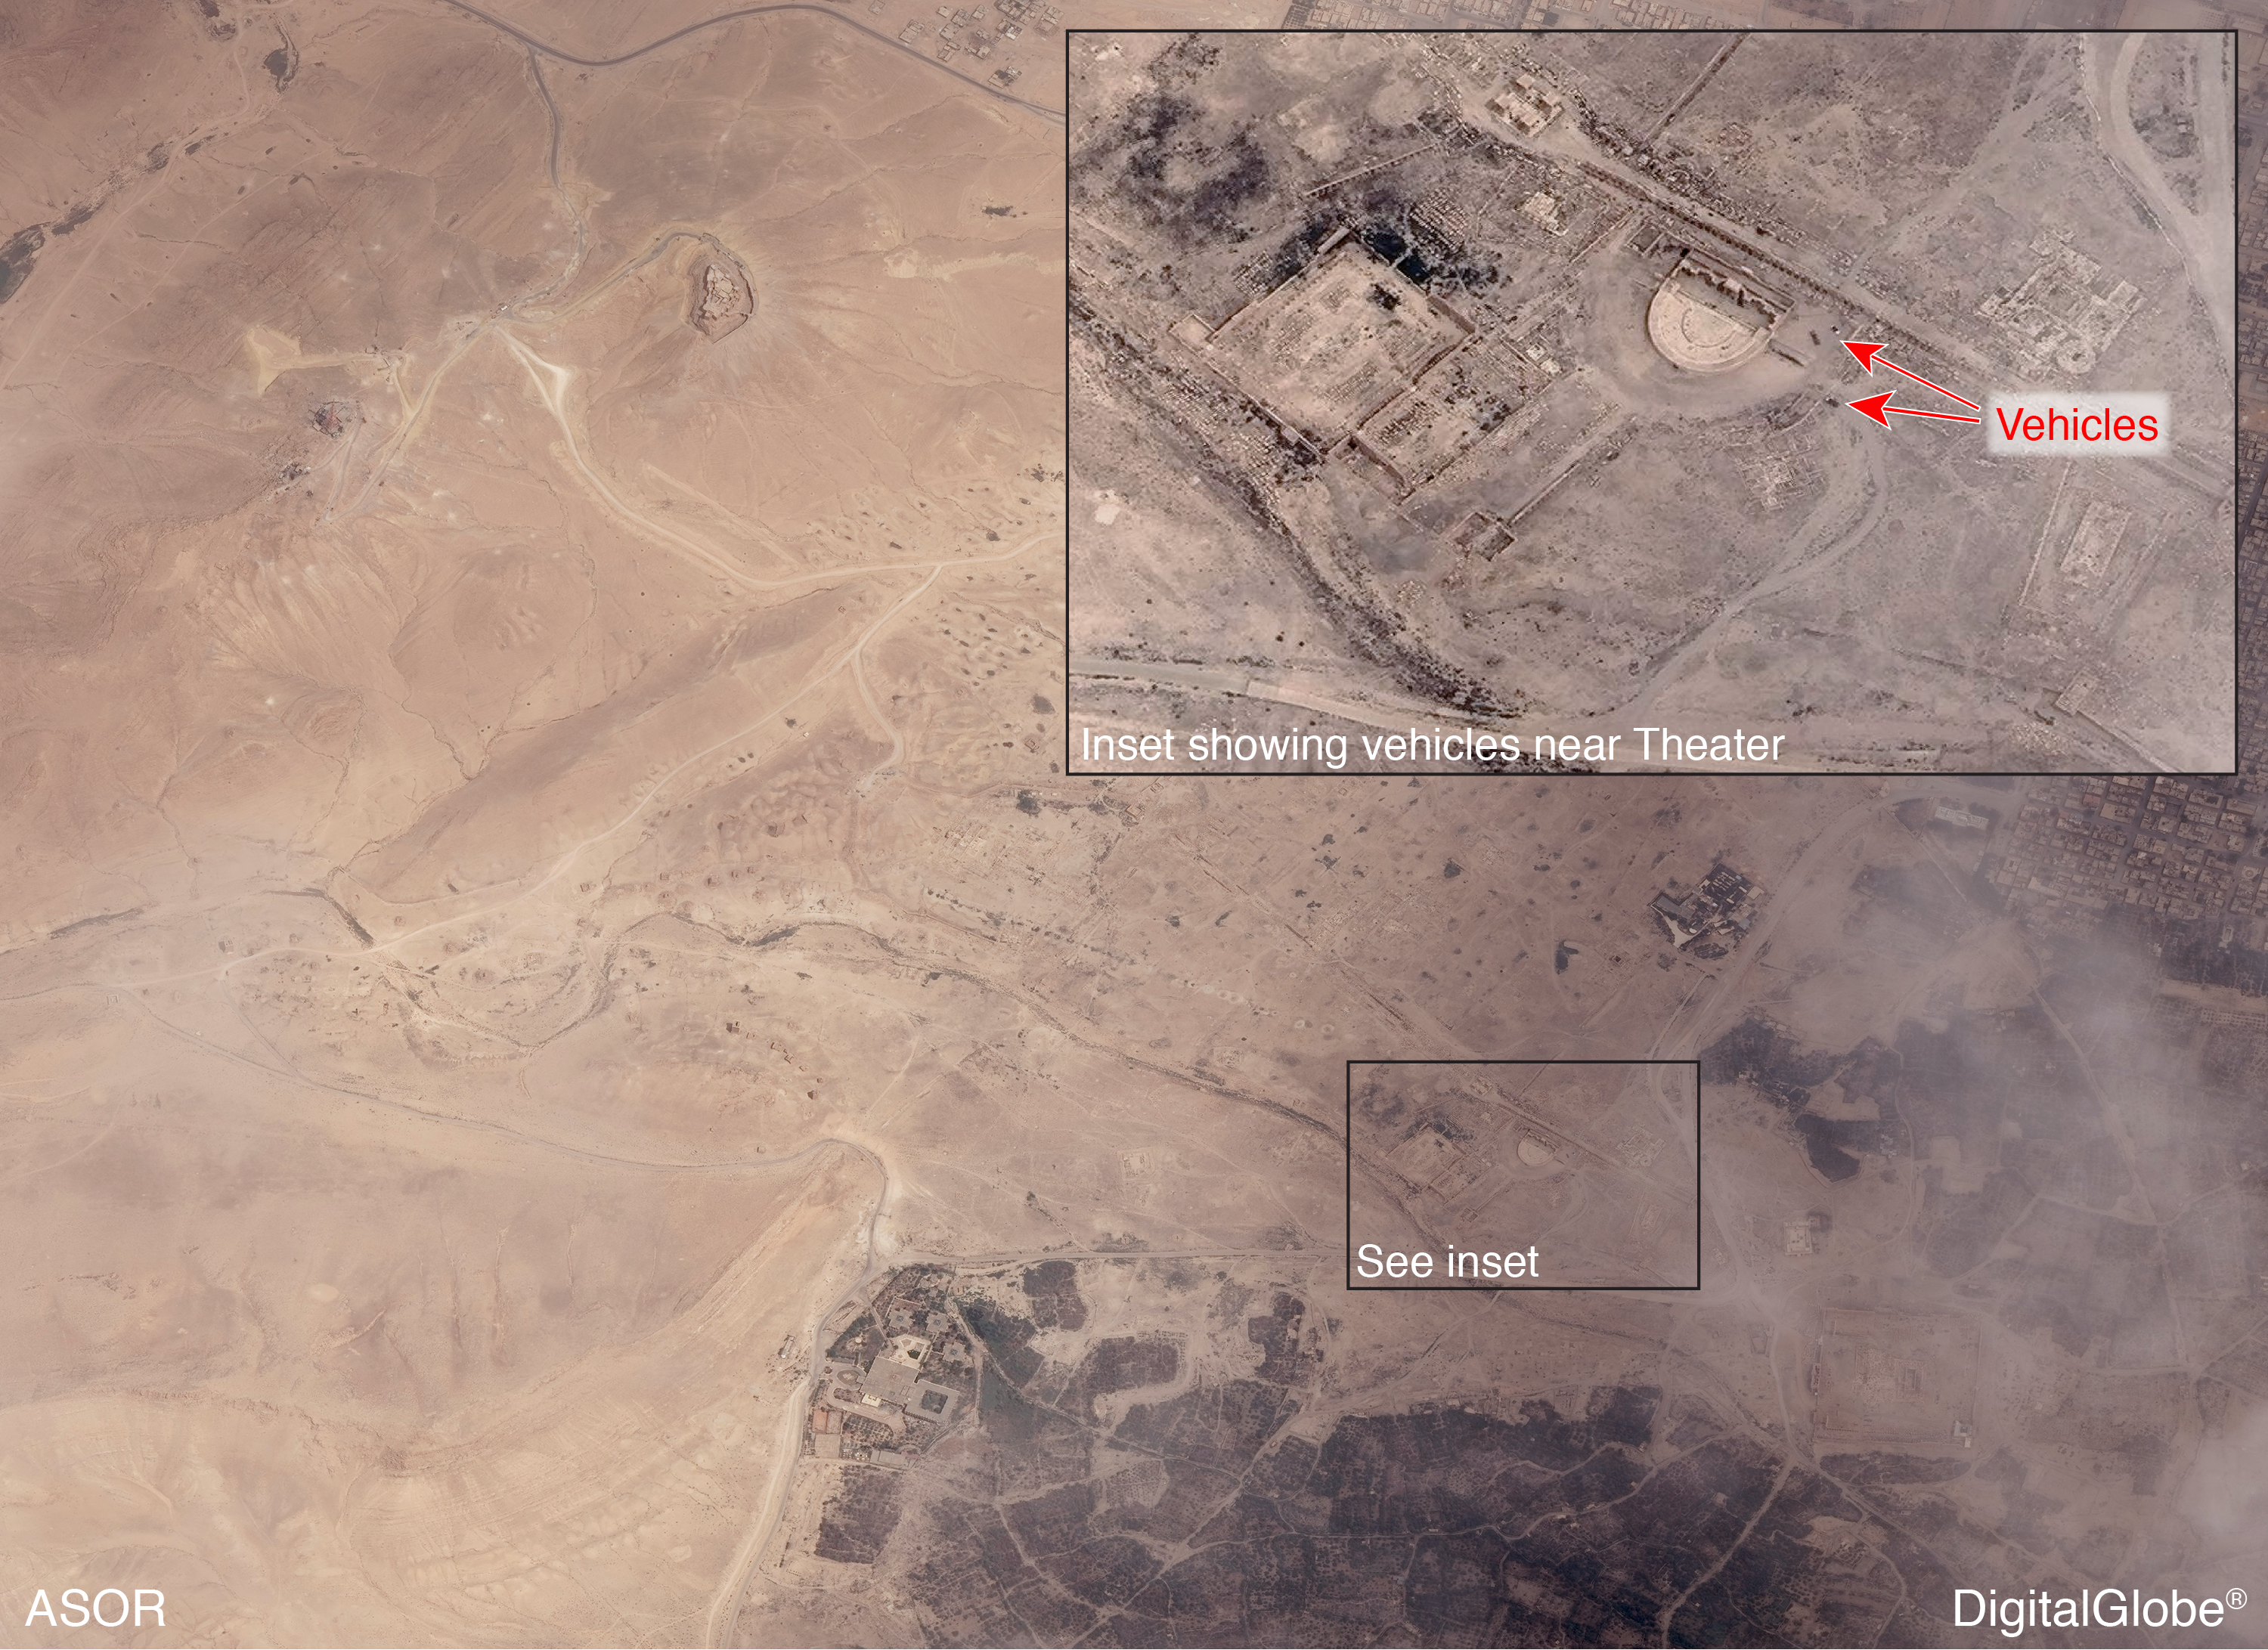 Figure 5: Recent satellite image showing ancient city of Palmyra, no visible damage, vehicles visible near the Theater (ASOR CHI; DigitalGlobe, taken May 27, 2015)